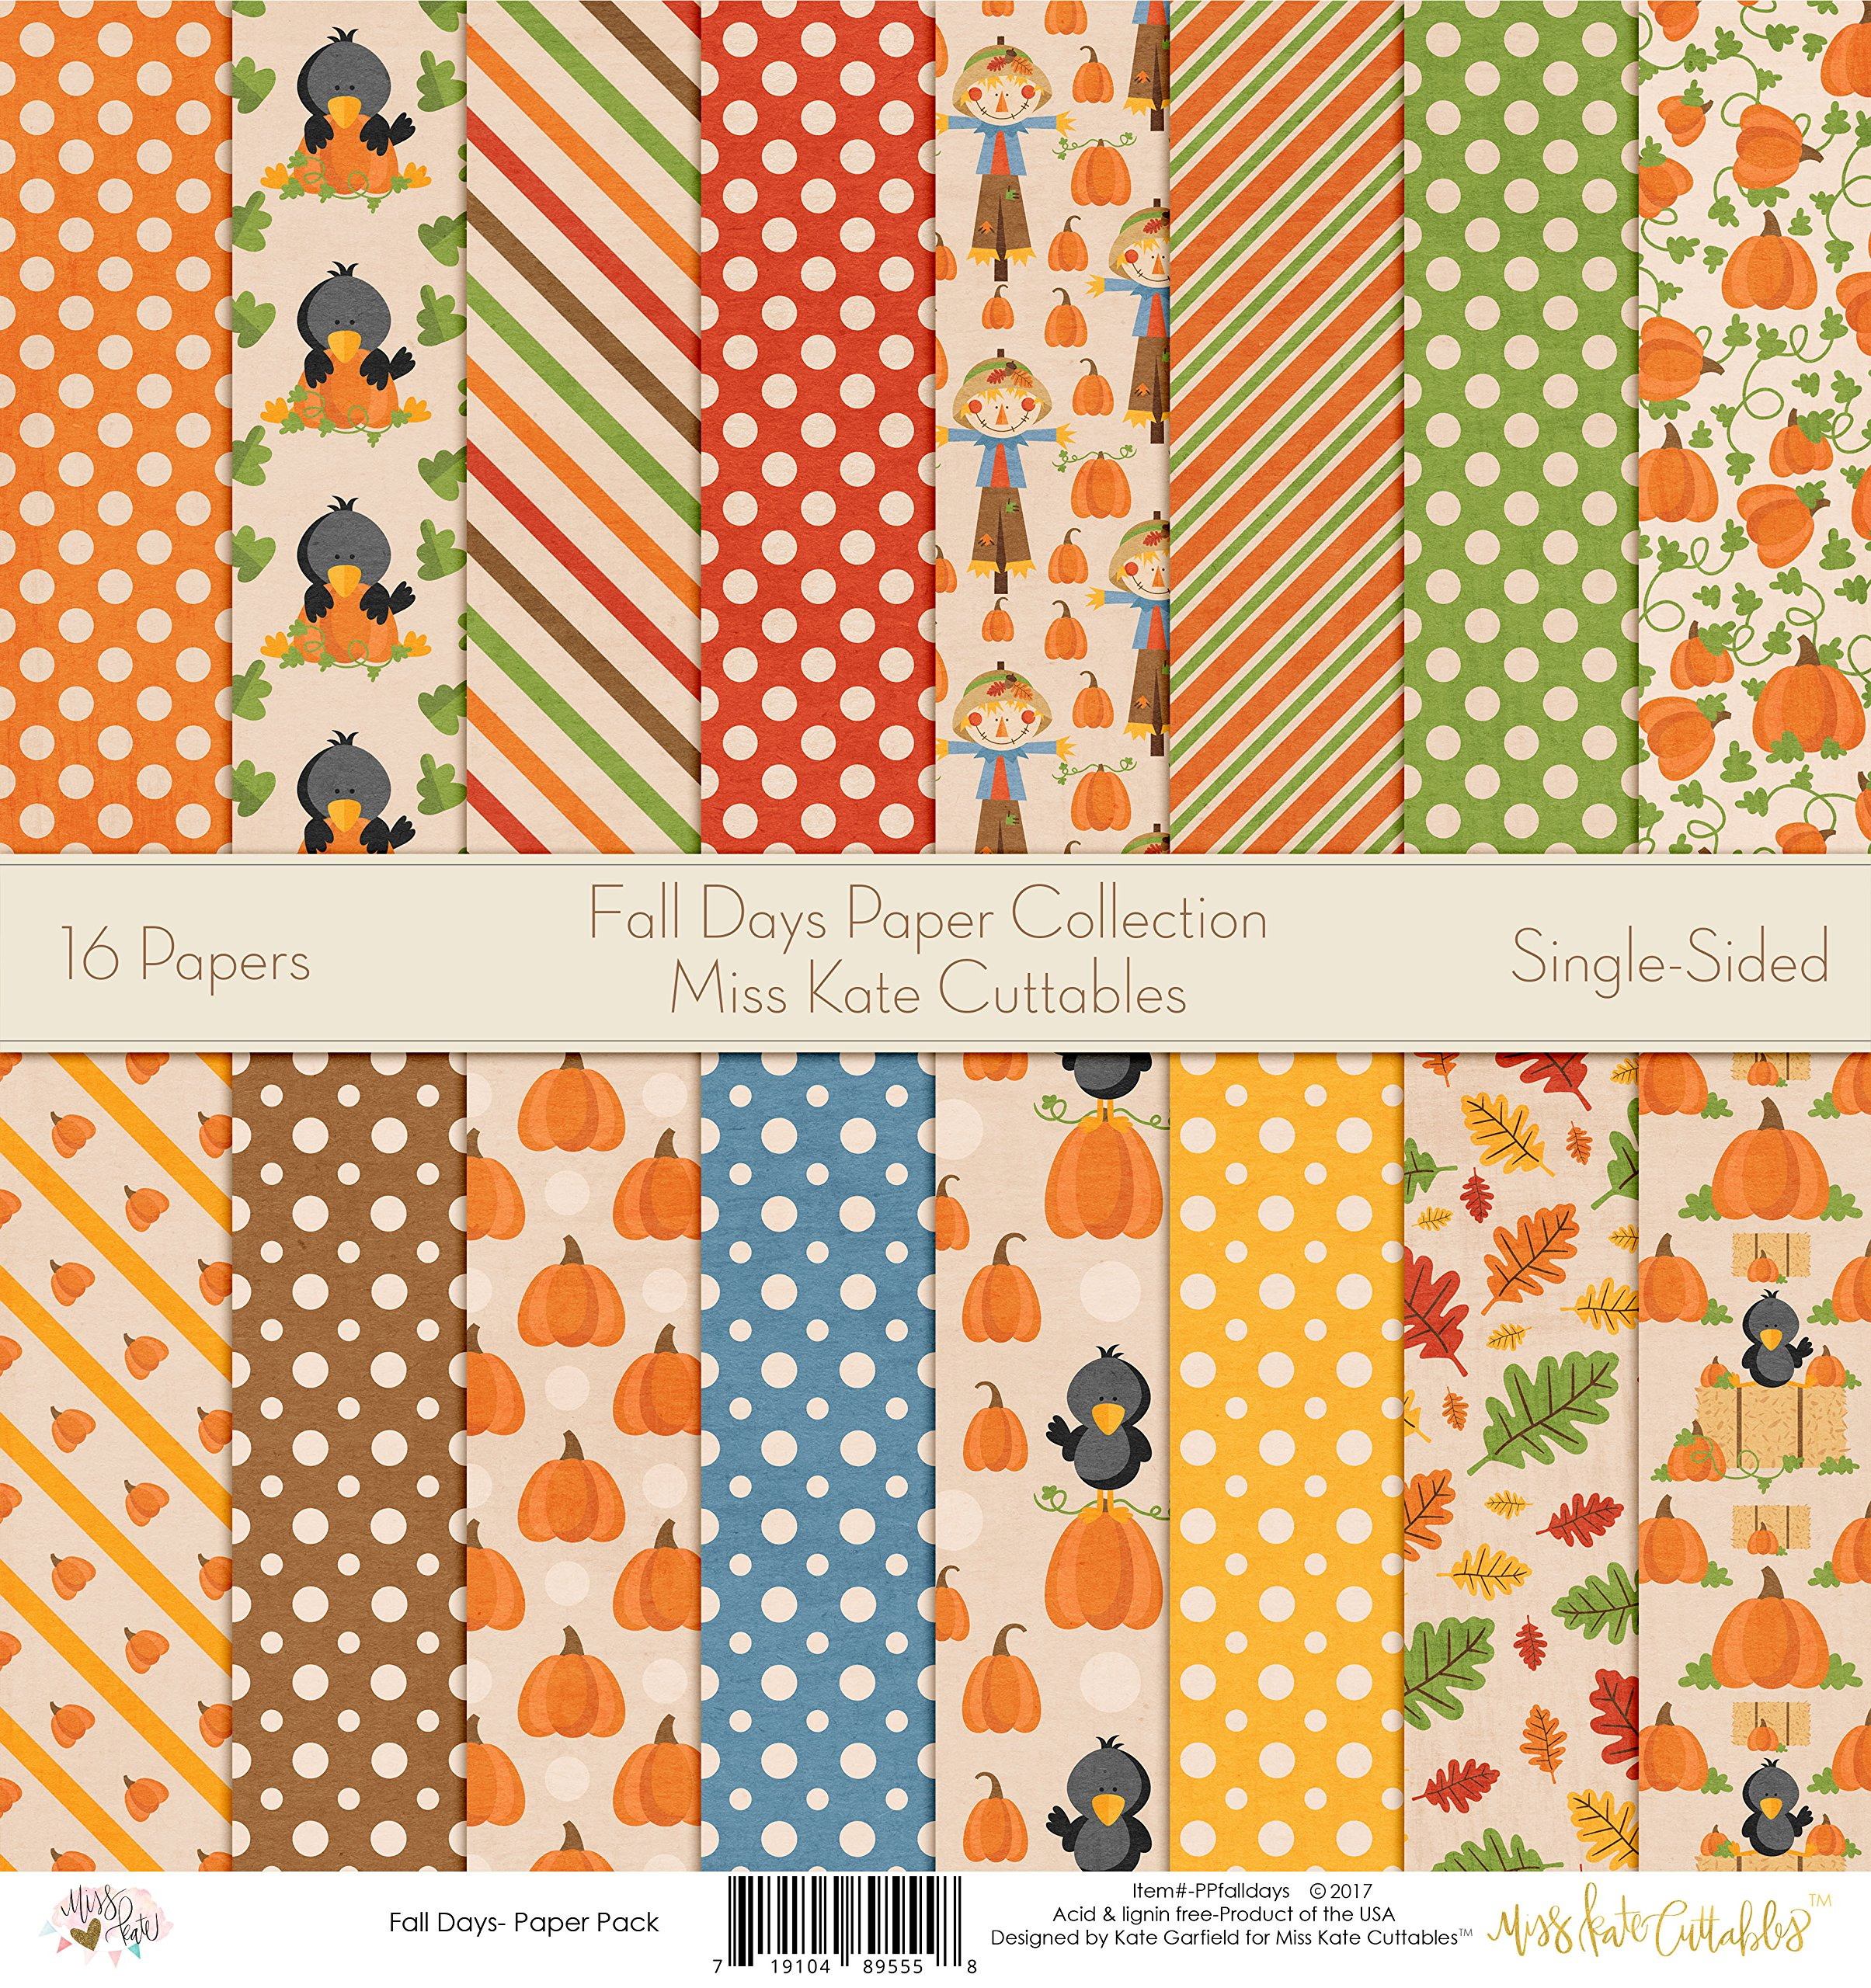 Pattern Paper Pack - Fall Days - Scrapbook Card Stock Single-Sided 12''x12'' Collection Includes 16 Sheets - by Miss Kate Cuttables